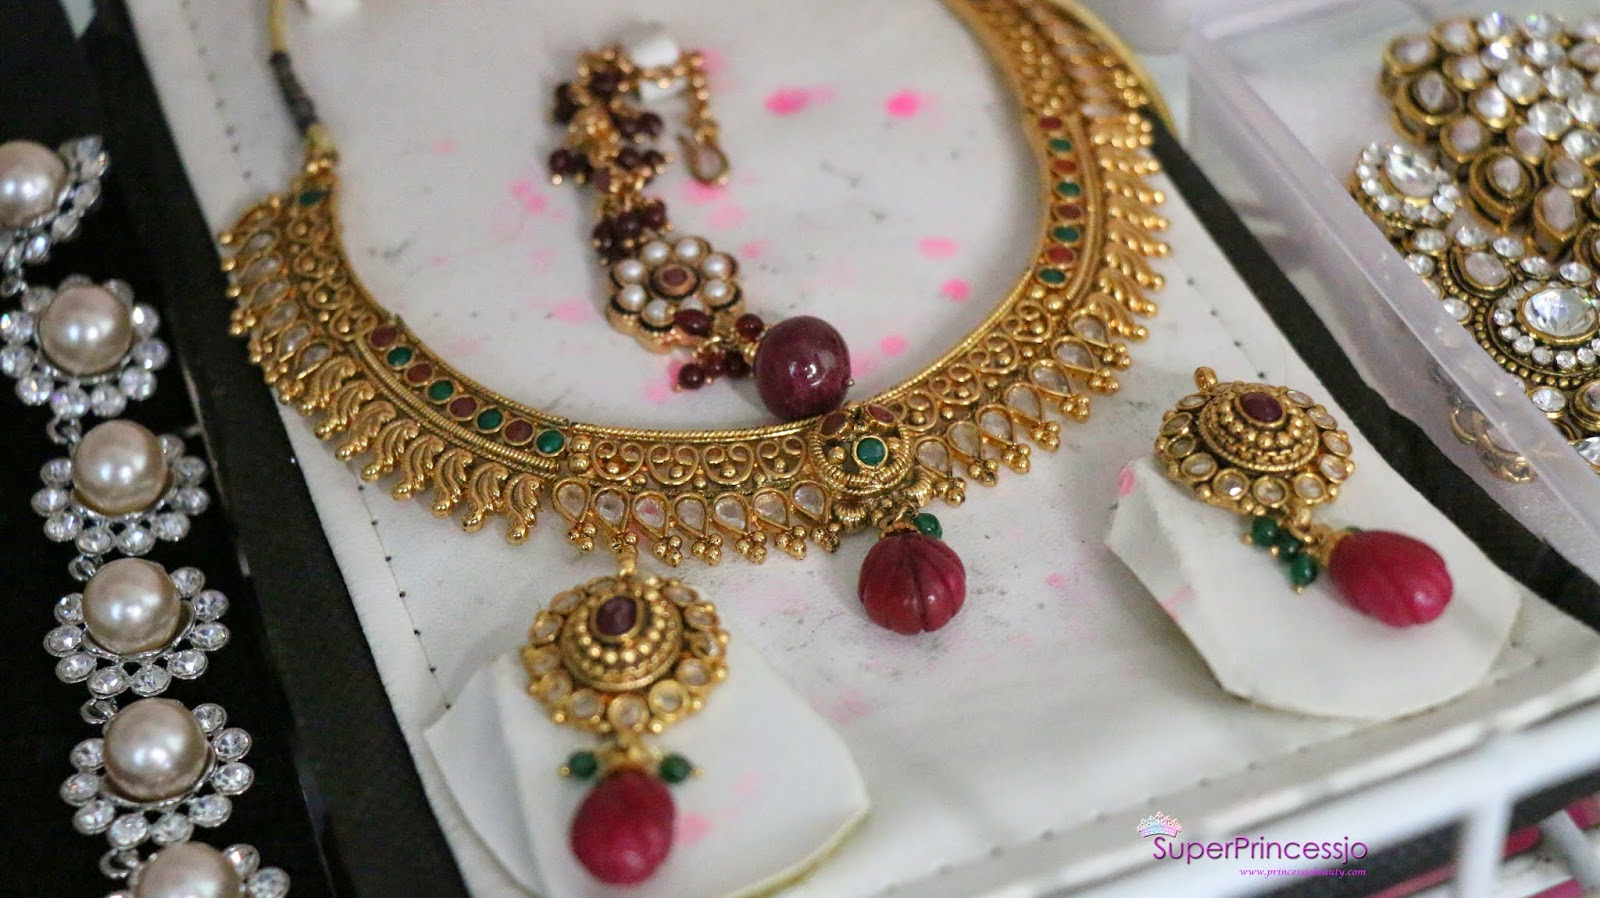 SuperPrincessjo : Indian Jewellery Collection Storage and ...